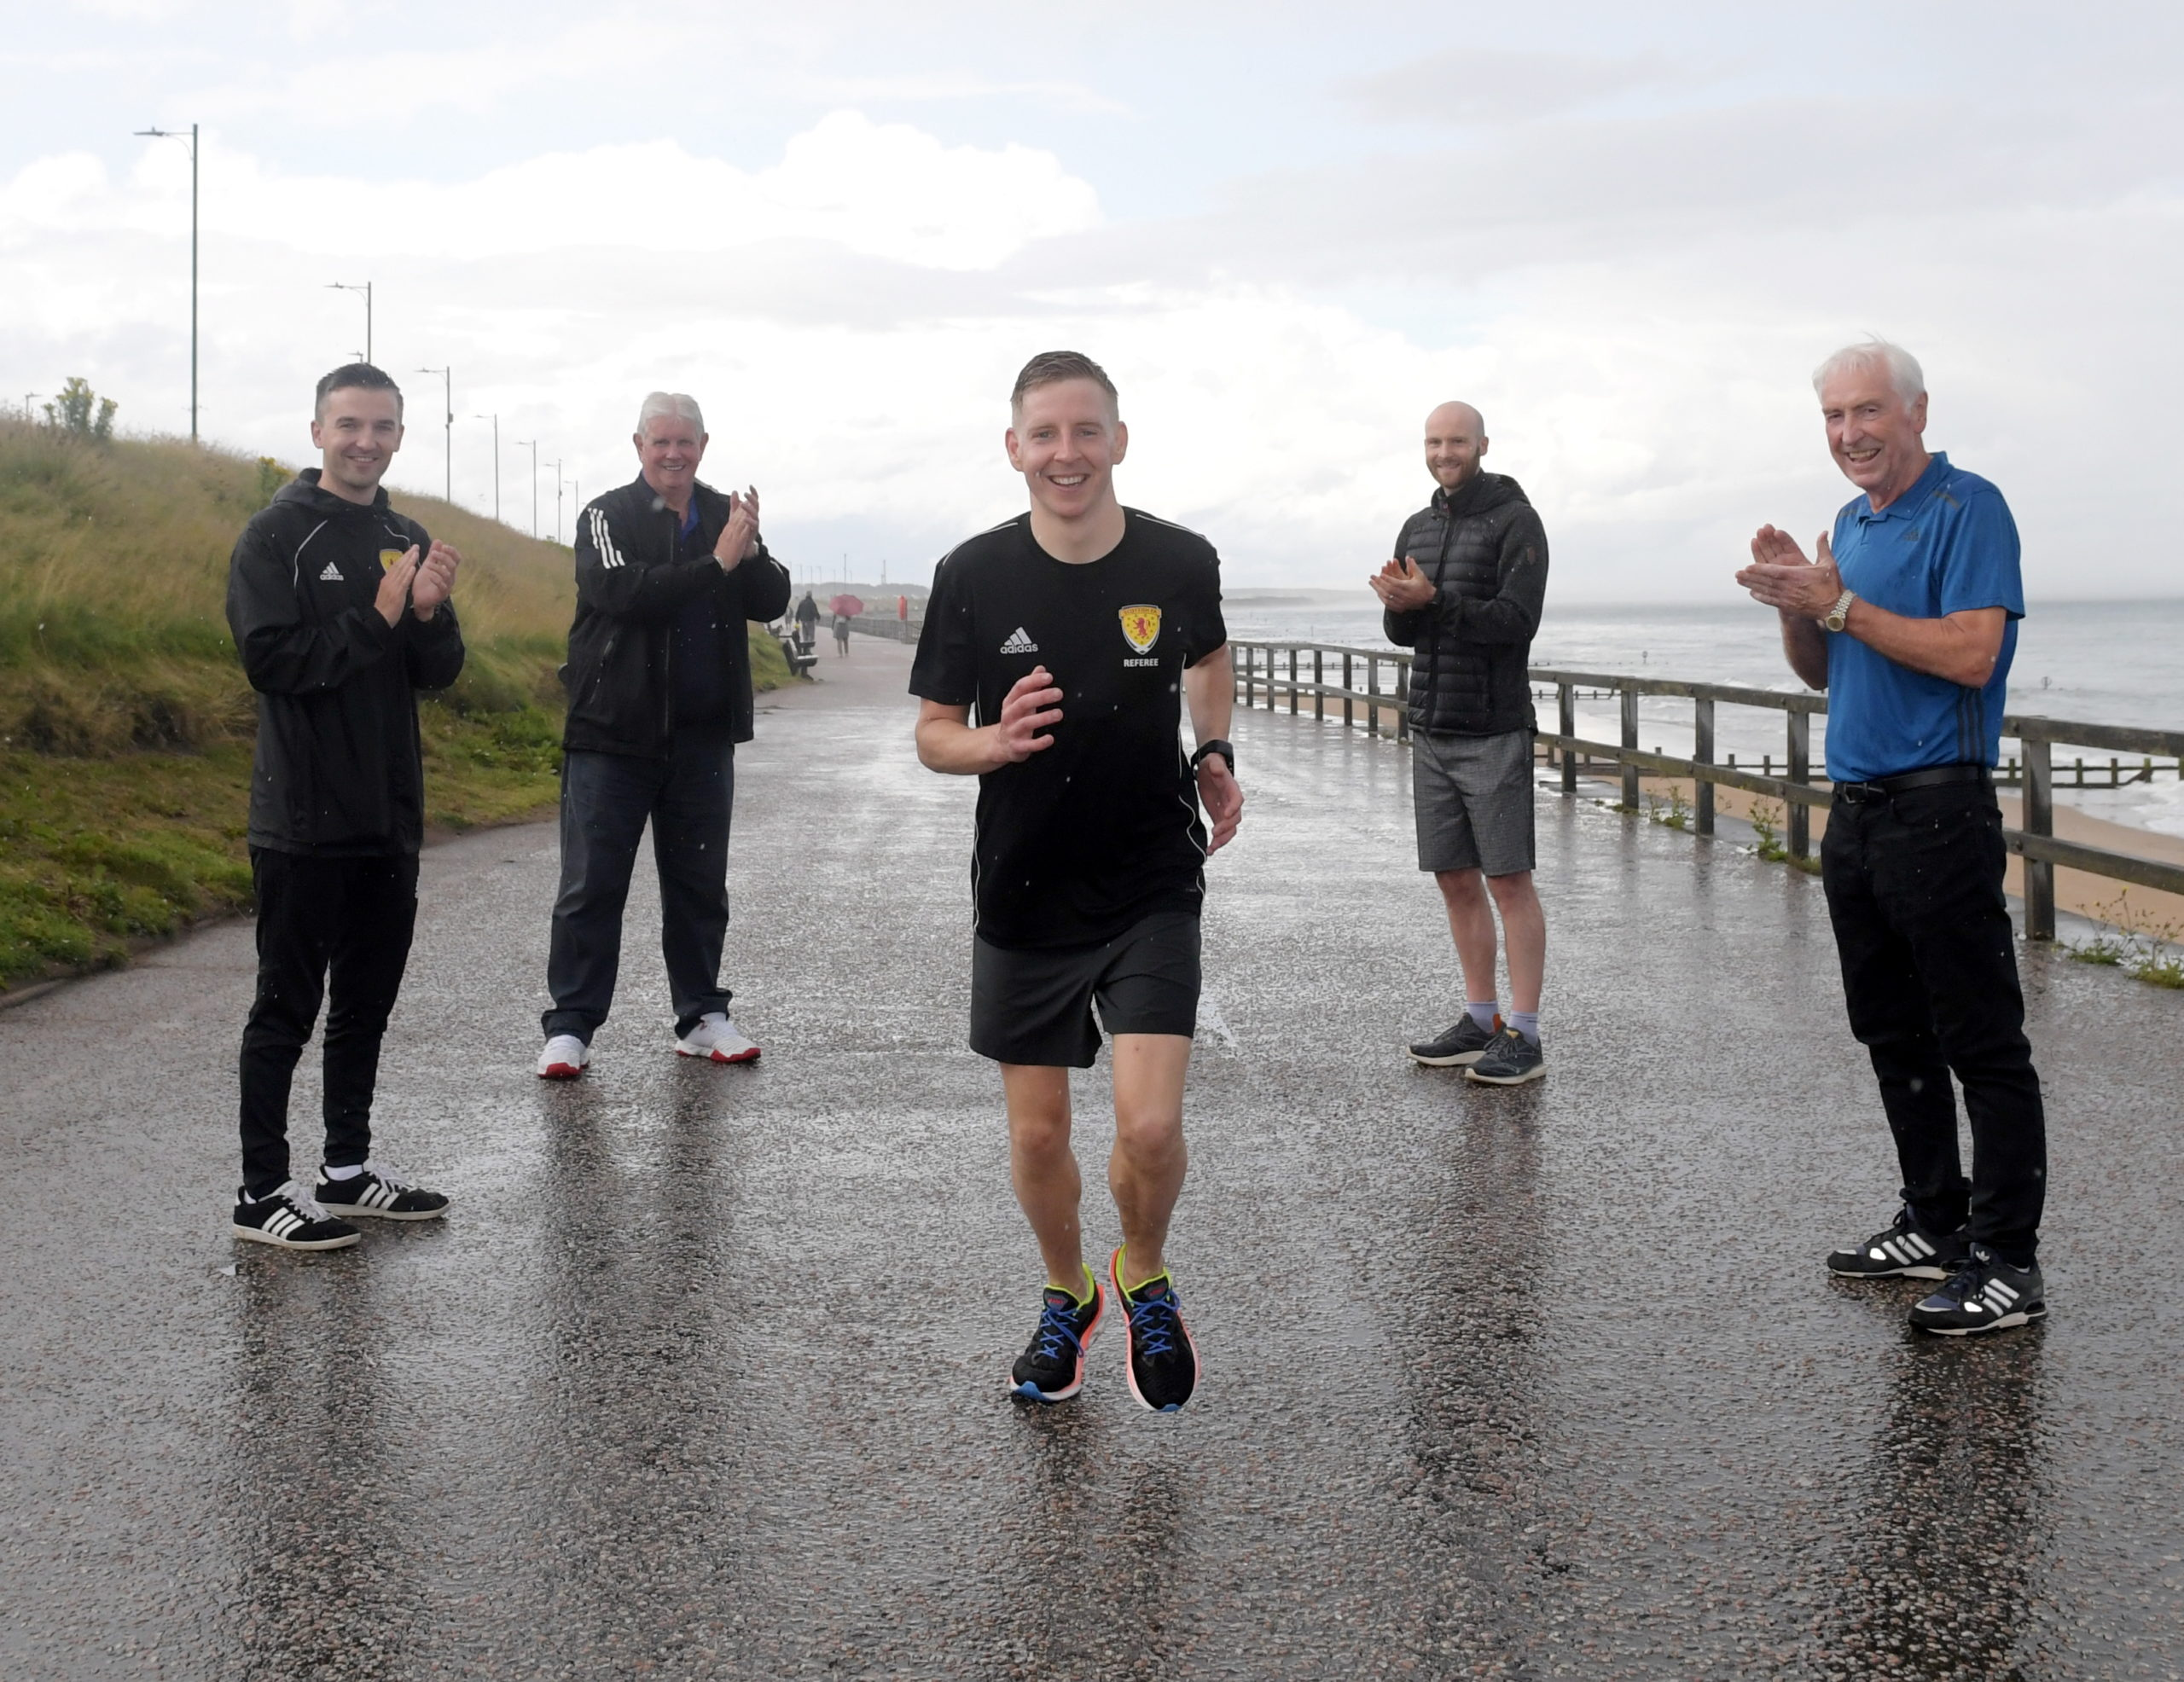 Calum Spence (centre) completes the referees' 24-hour charity running challenge with, from left, Dan McFarlane, Mike Pocock, Paul McAvinue and Sandy Roy. Picture by Kath Flannery